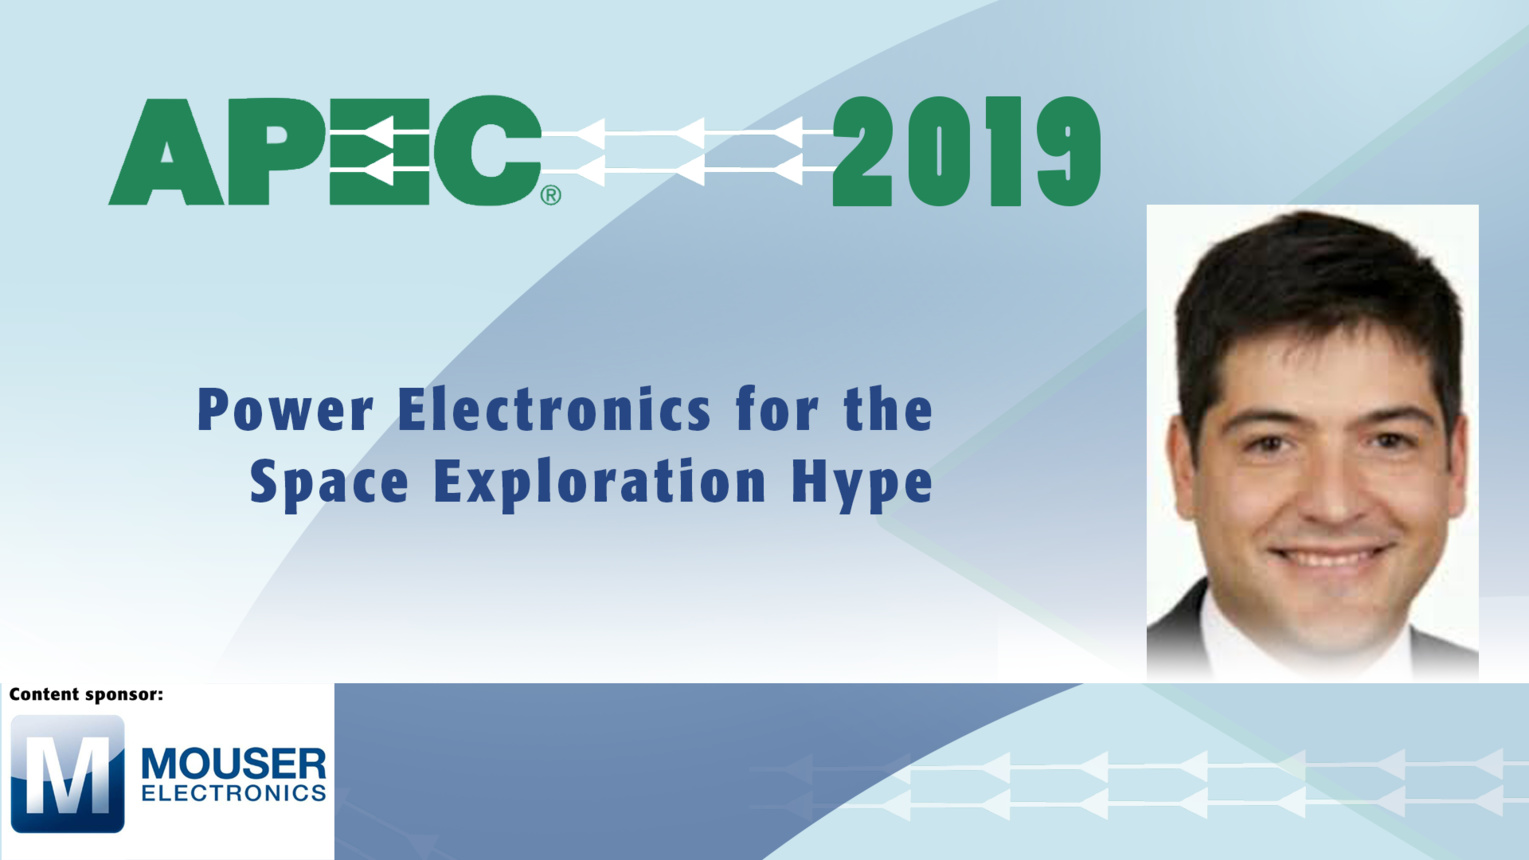 Power Electronics for the Space Exploration Hype: APEC 2019